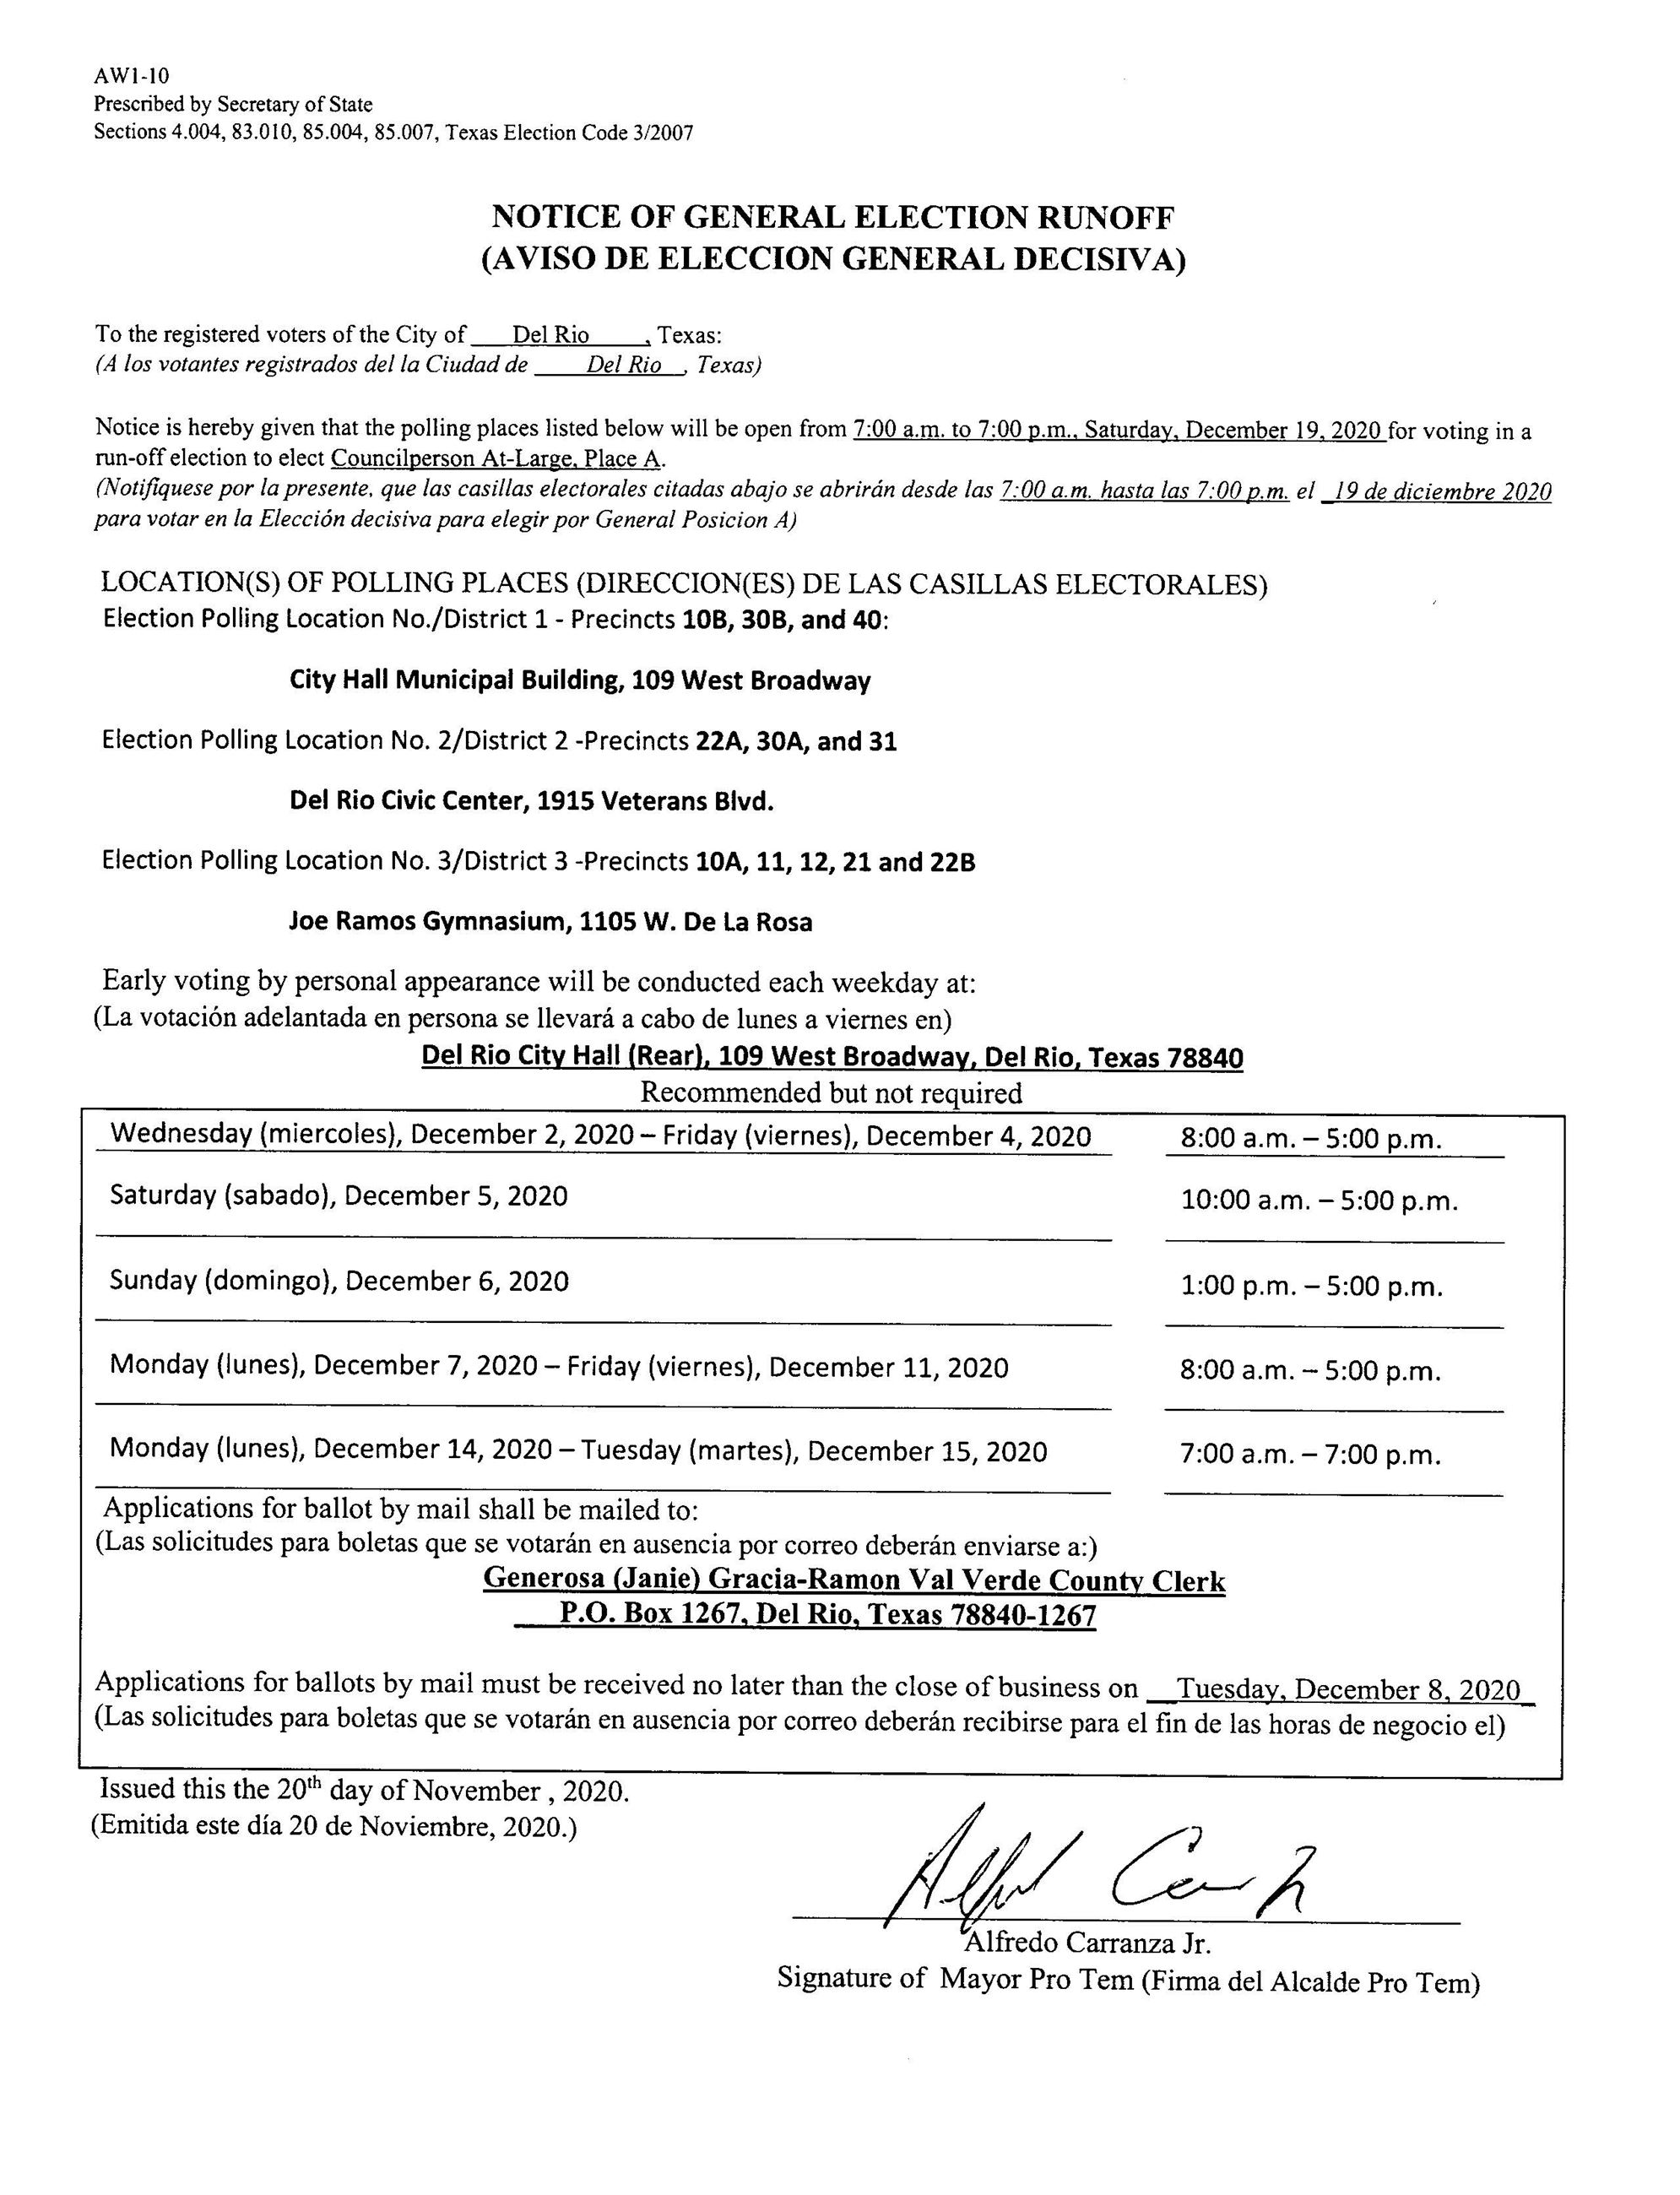 NOTICE OF GENERAL ELECTION RUNOFF